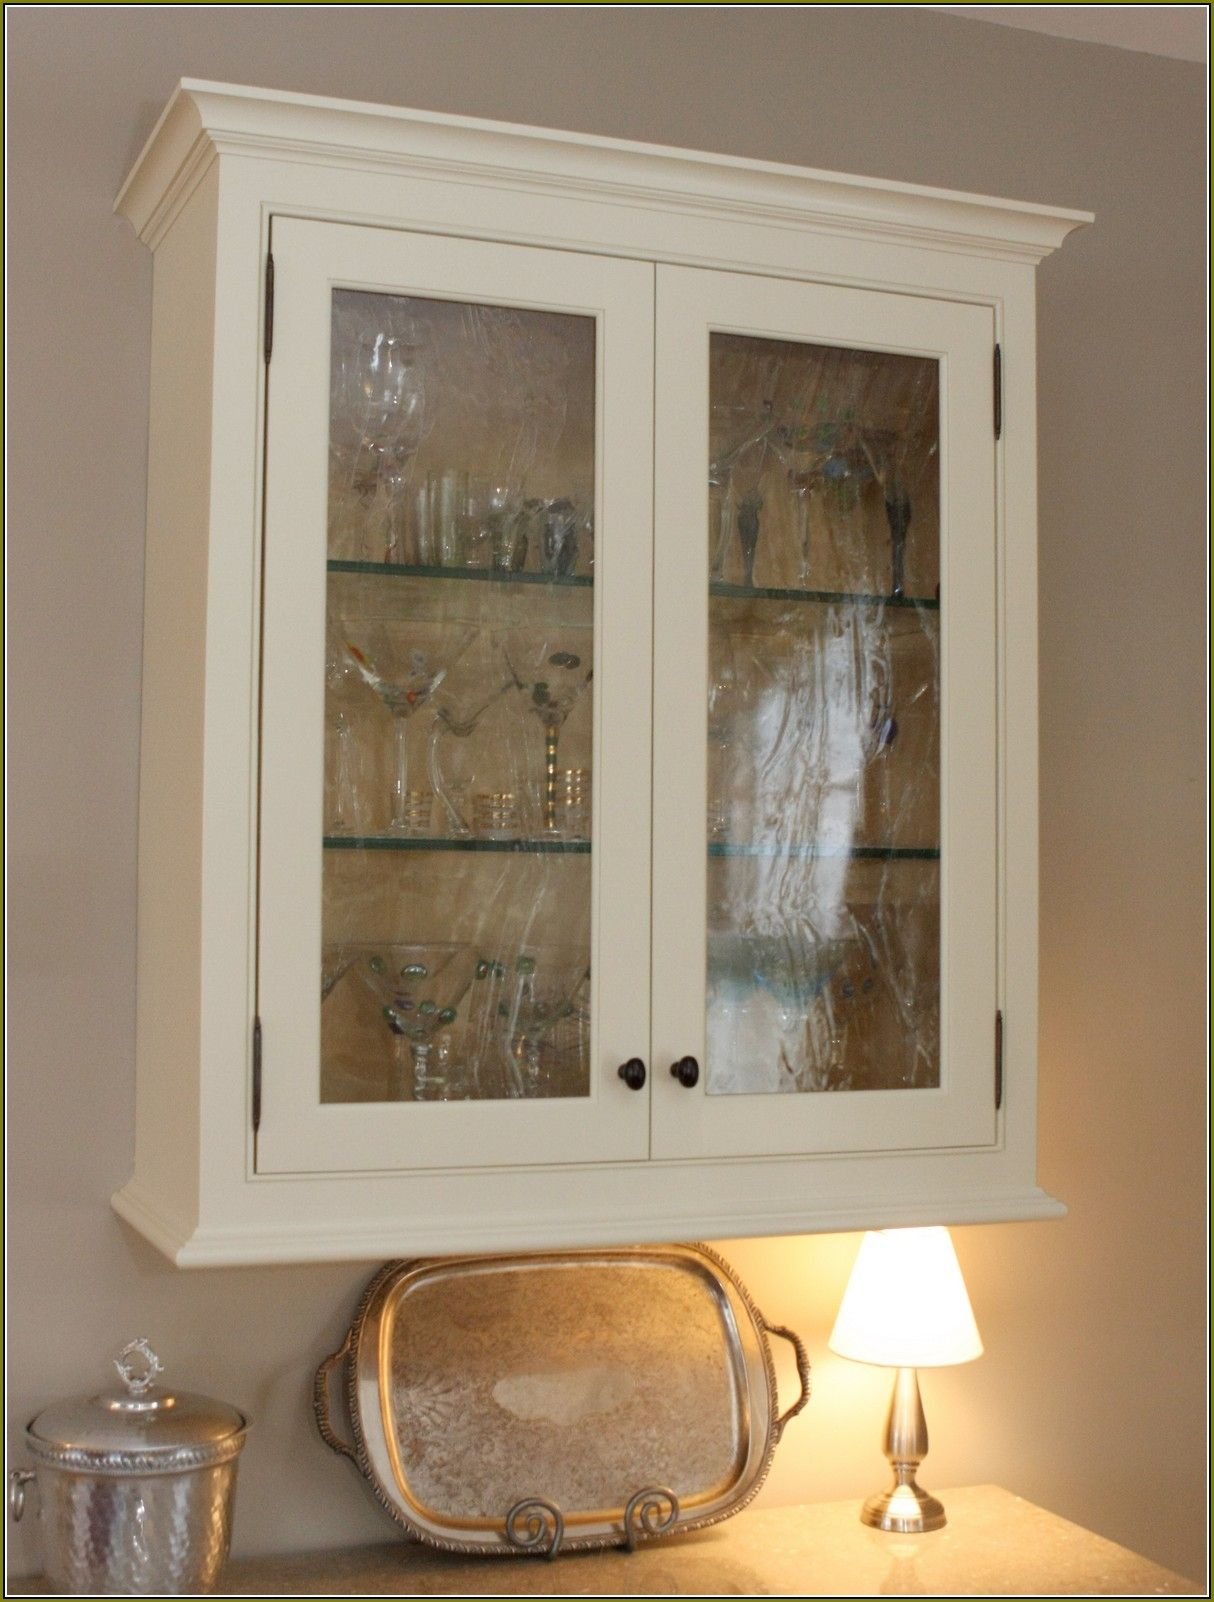 Hanging Wall Cabinet With Glass Doors | Glass cabinet ...